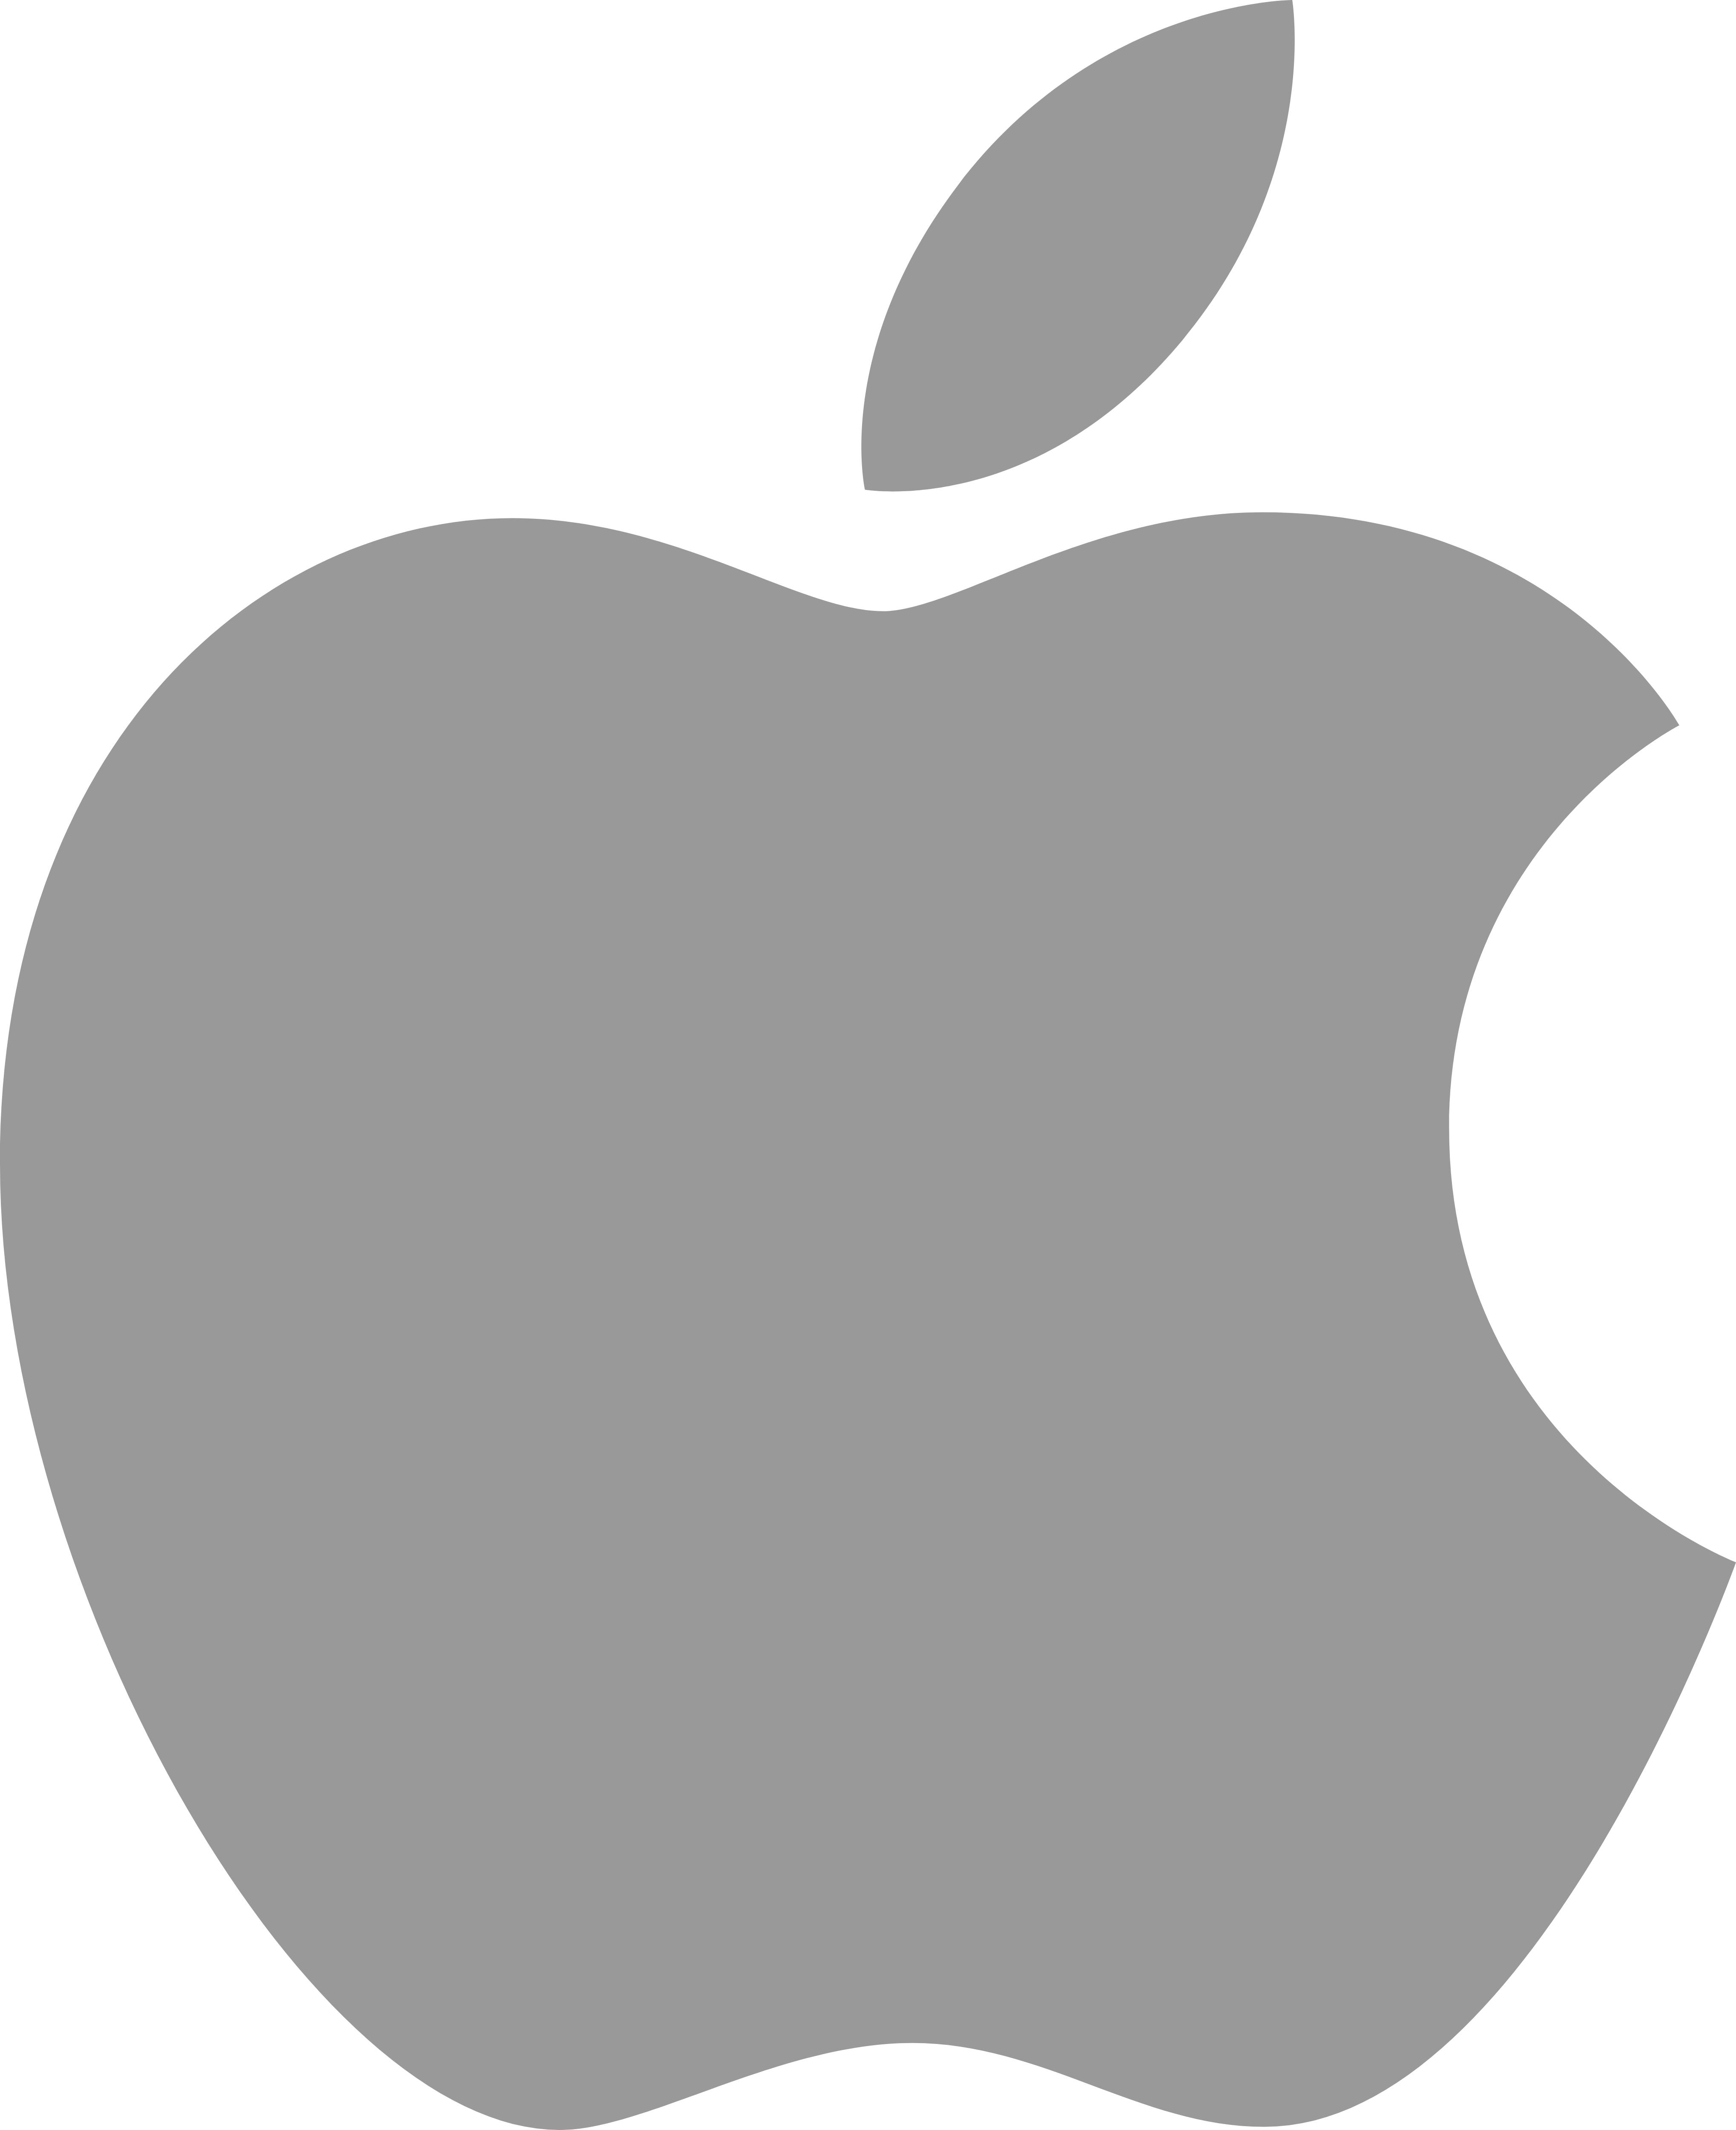 White apple logo clipart png freeuse library Apple – Logos Download png freeuse library